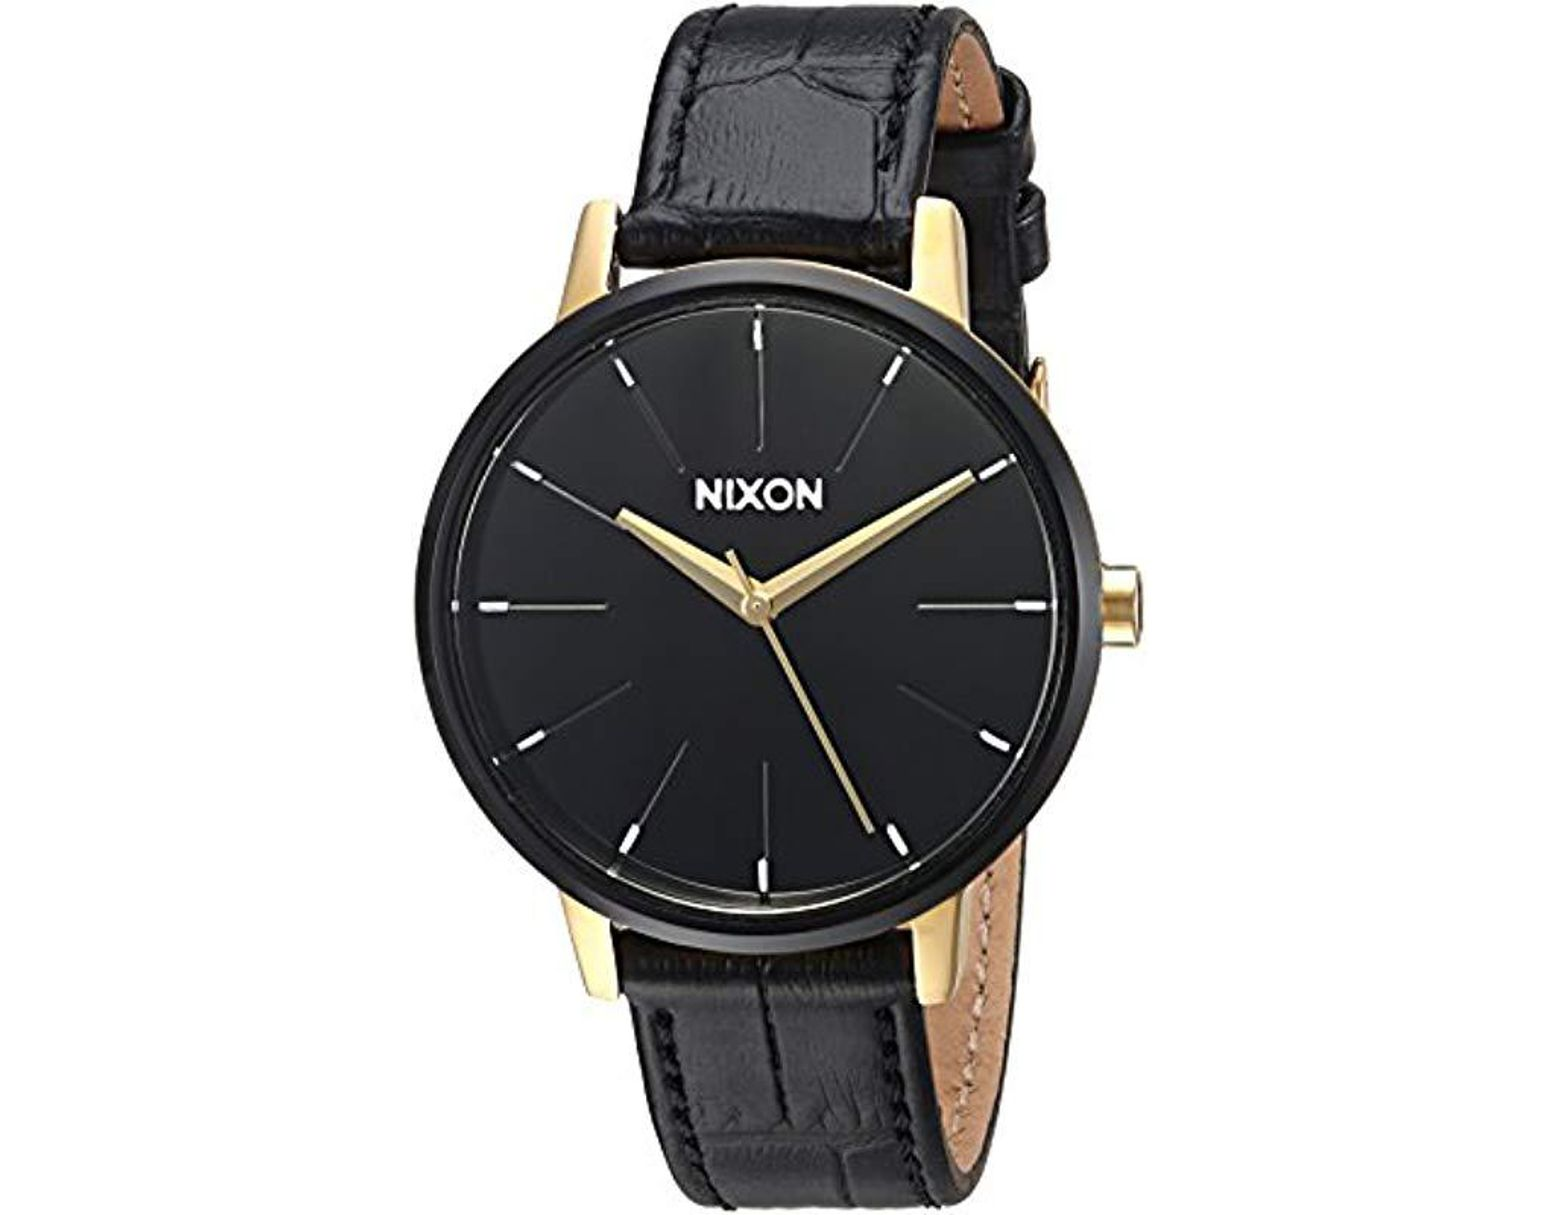 3533e510f Nixon Kensington Stainless Steel Watch With Leather Band in Black - Lyst